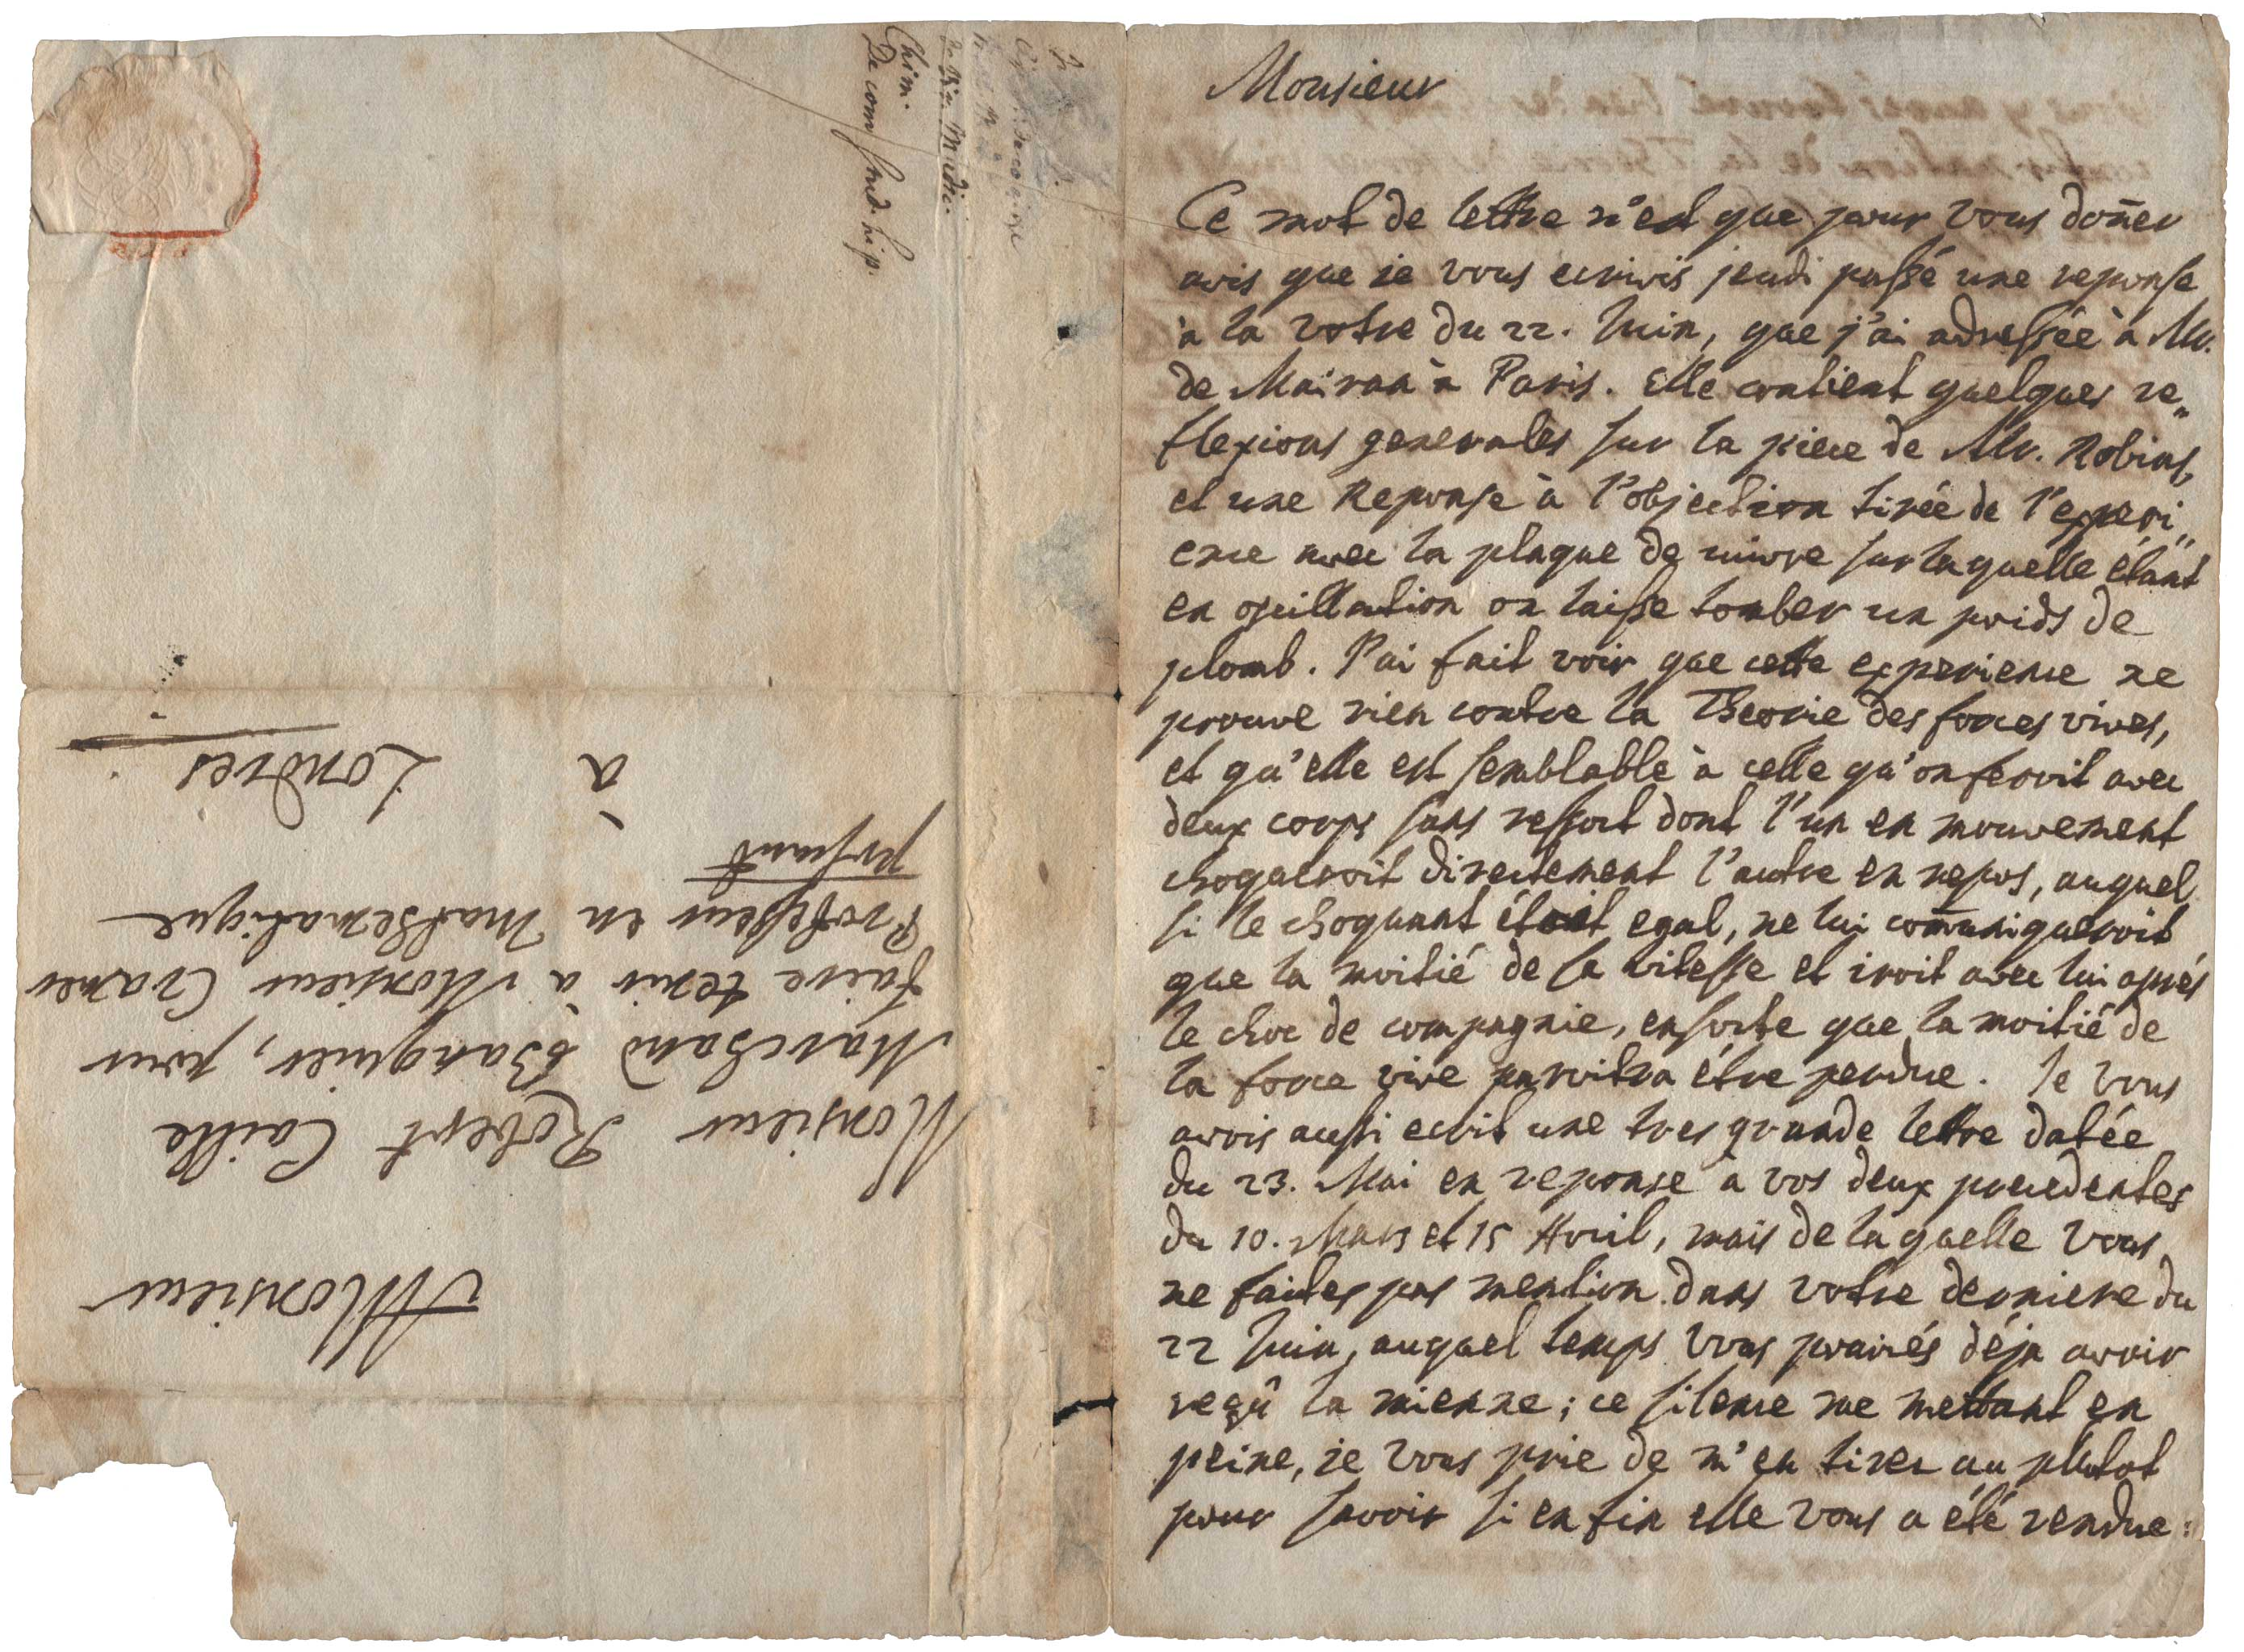 Autograph letter signed, with important scientific content concerning the 'vis viva' controversy, from Basel, dated 27 July 1728, to Gabriel Cramer, 'Professor of Mathematics,' presently in London. Johann BERNOULLI.